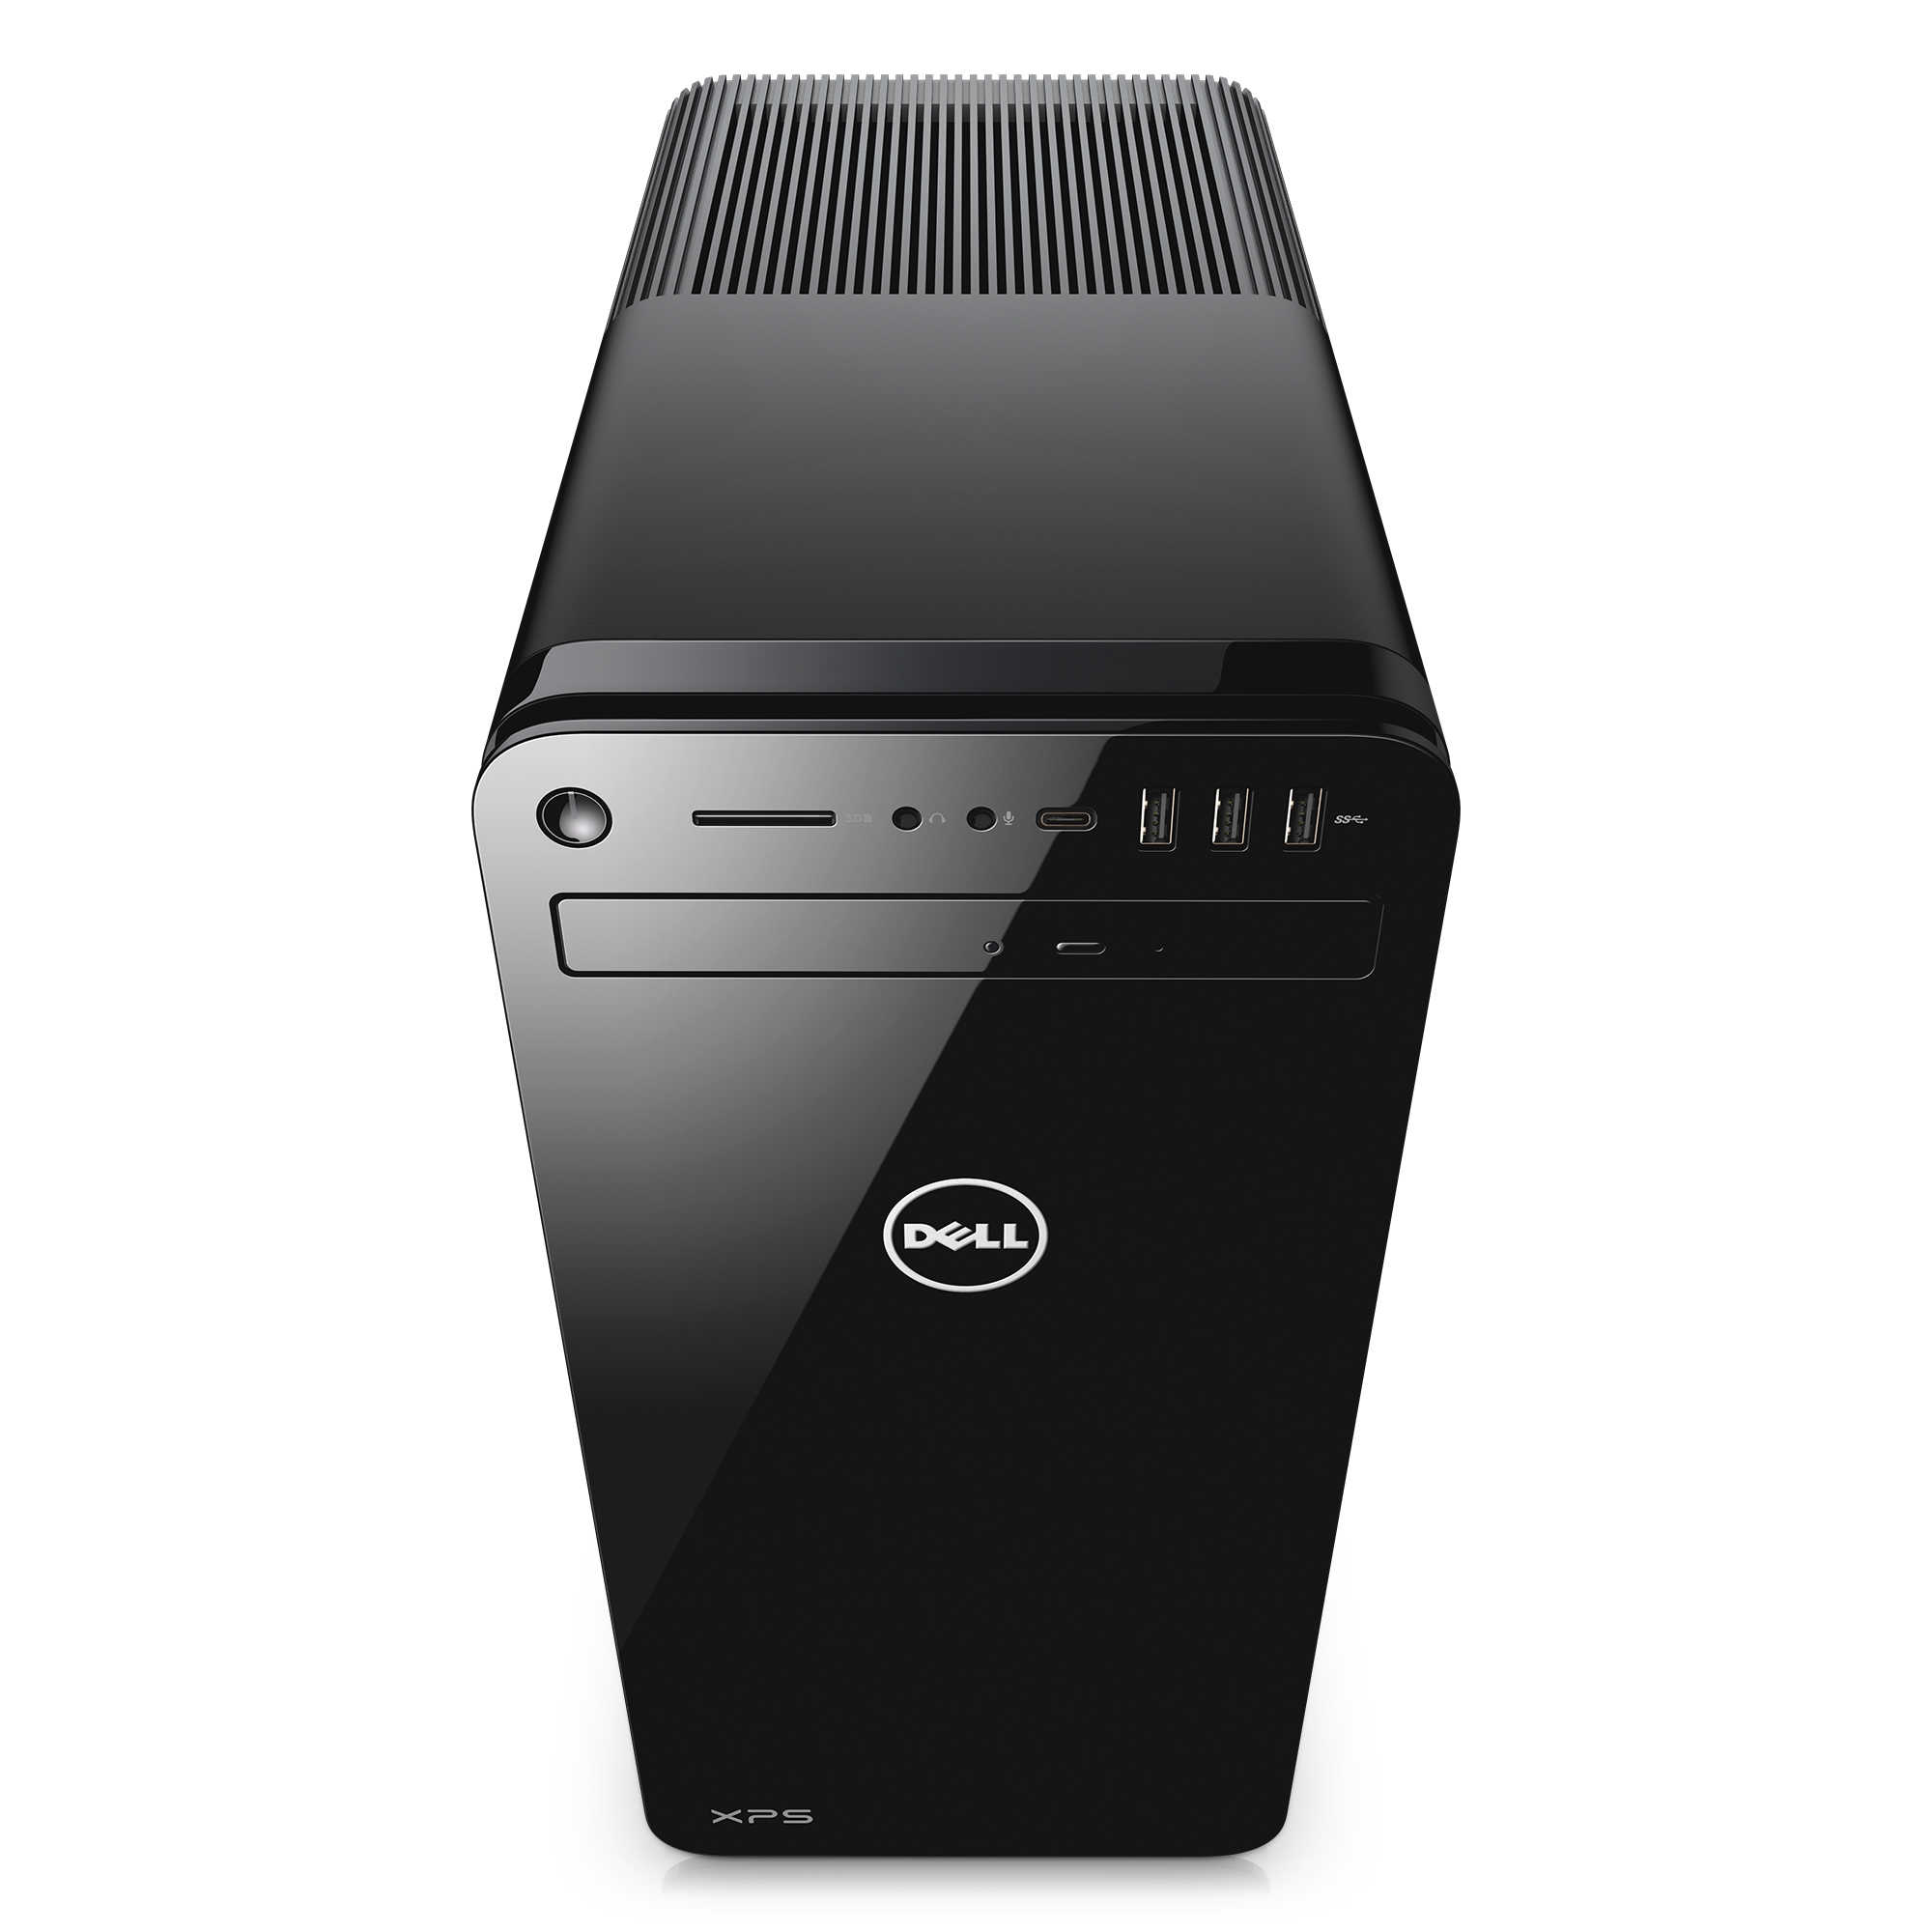 Dell - XPS Tower (XPS 8930), Intel Core i7-8700, 8GB 2666MHz DDR4, 16 GB Intel Optane, NVIDIA GeForce GT 1030